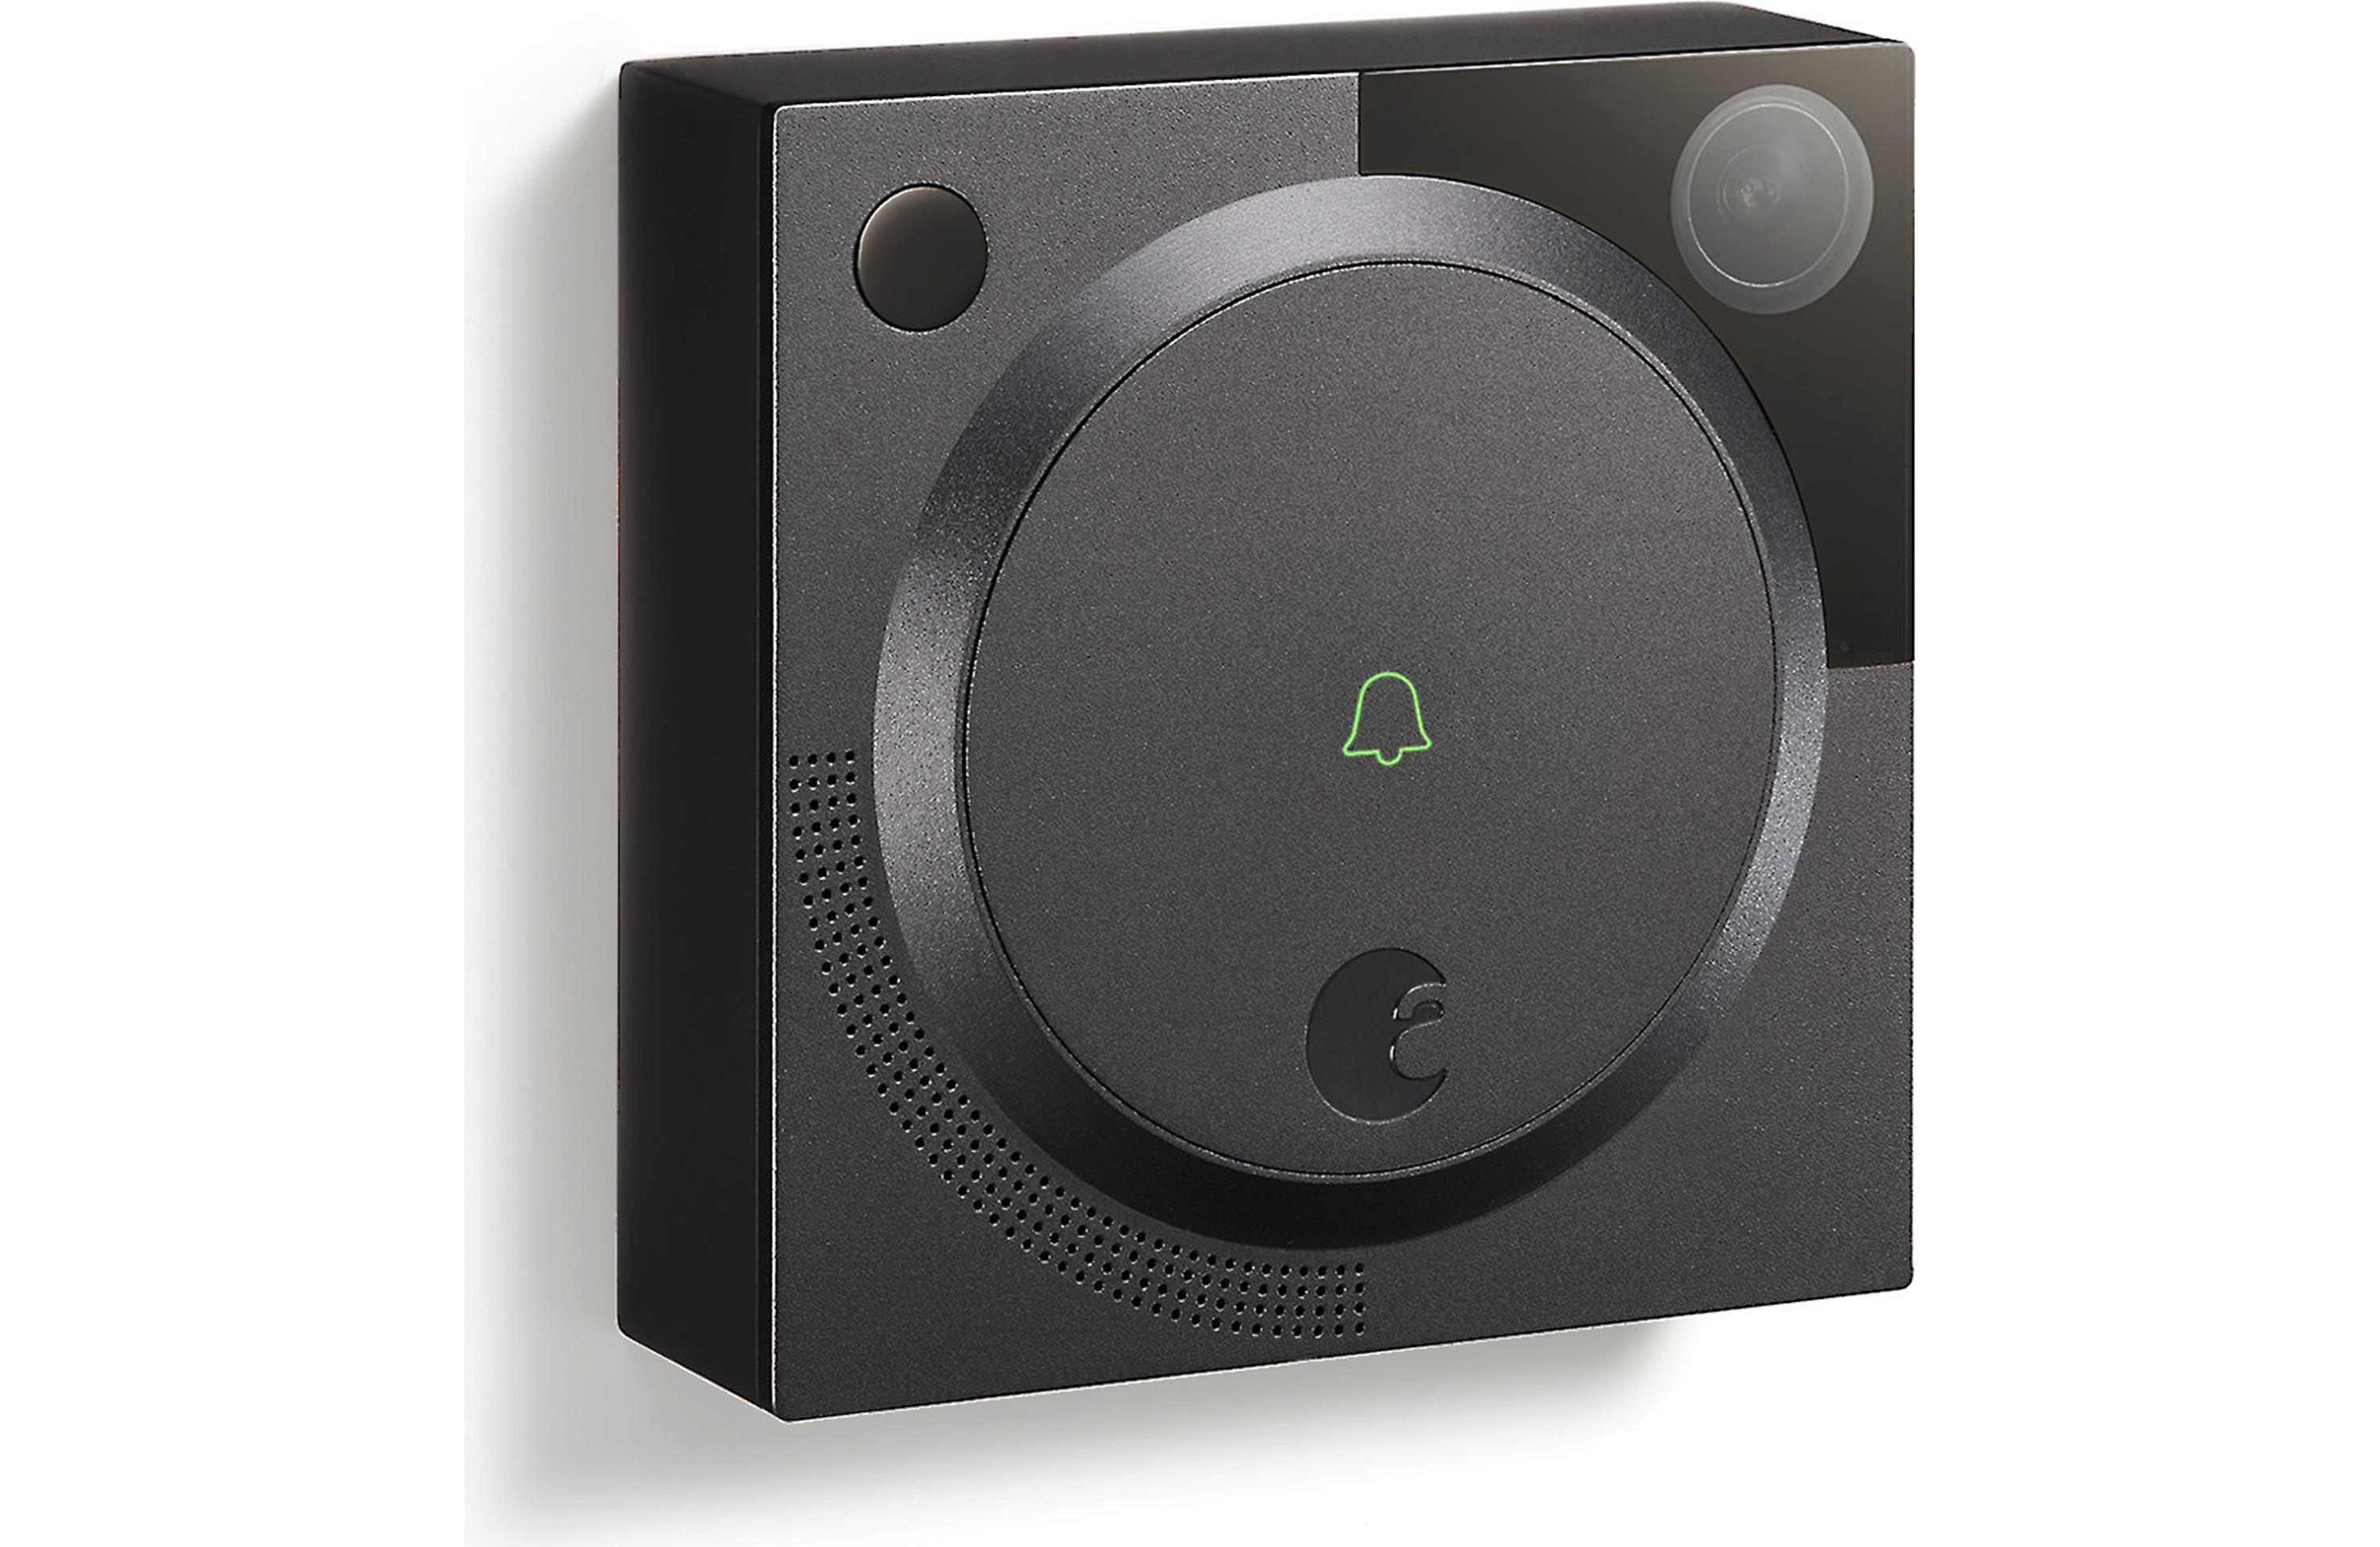 Image for August Doorbell Cam Pro Dark Gray from Circuit City